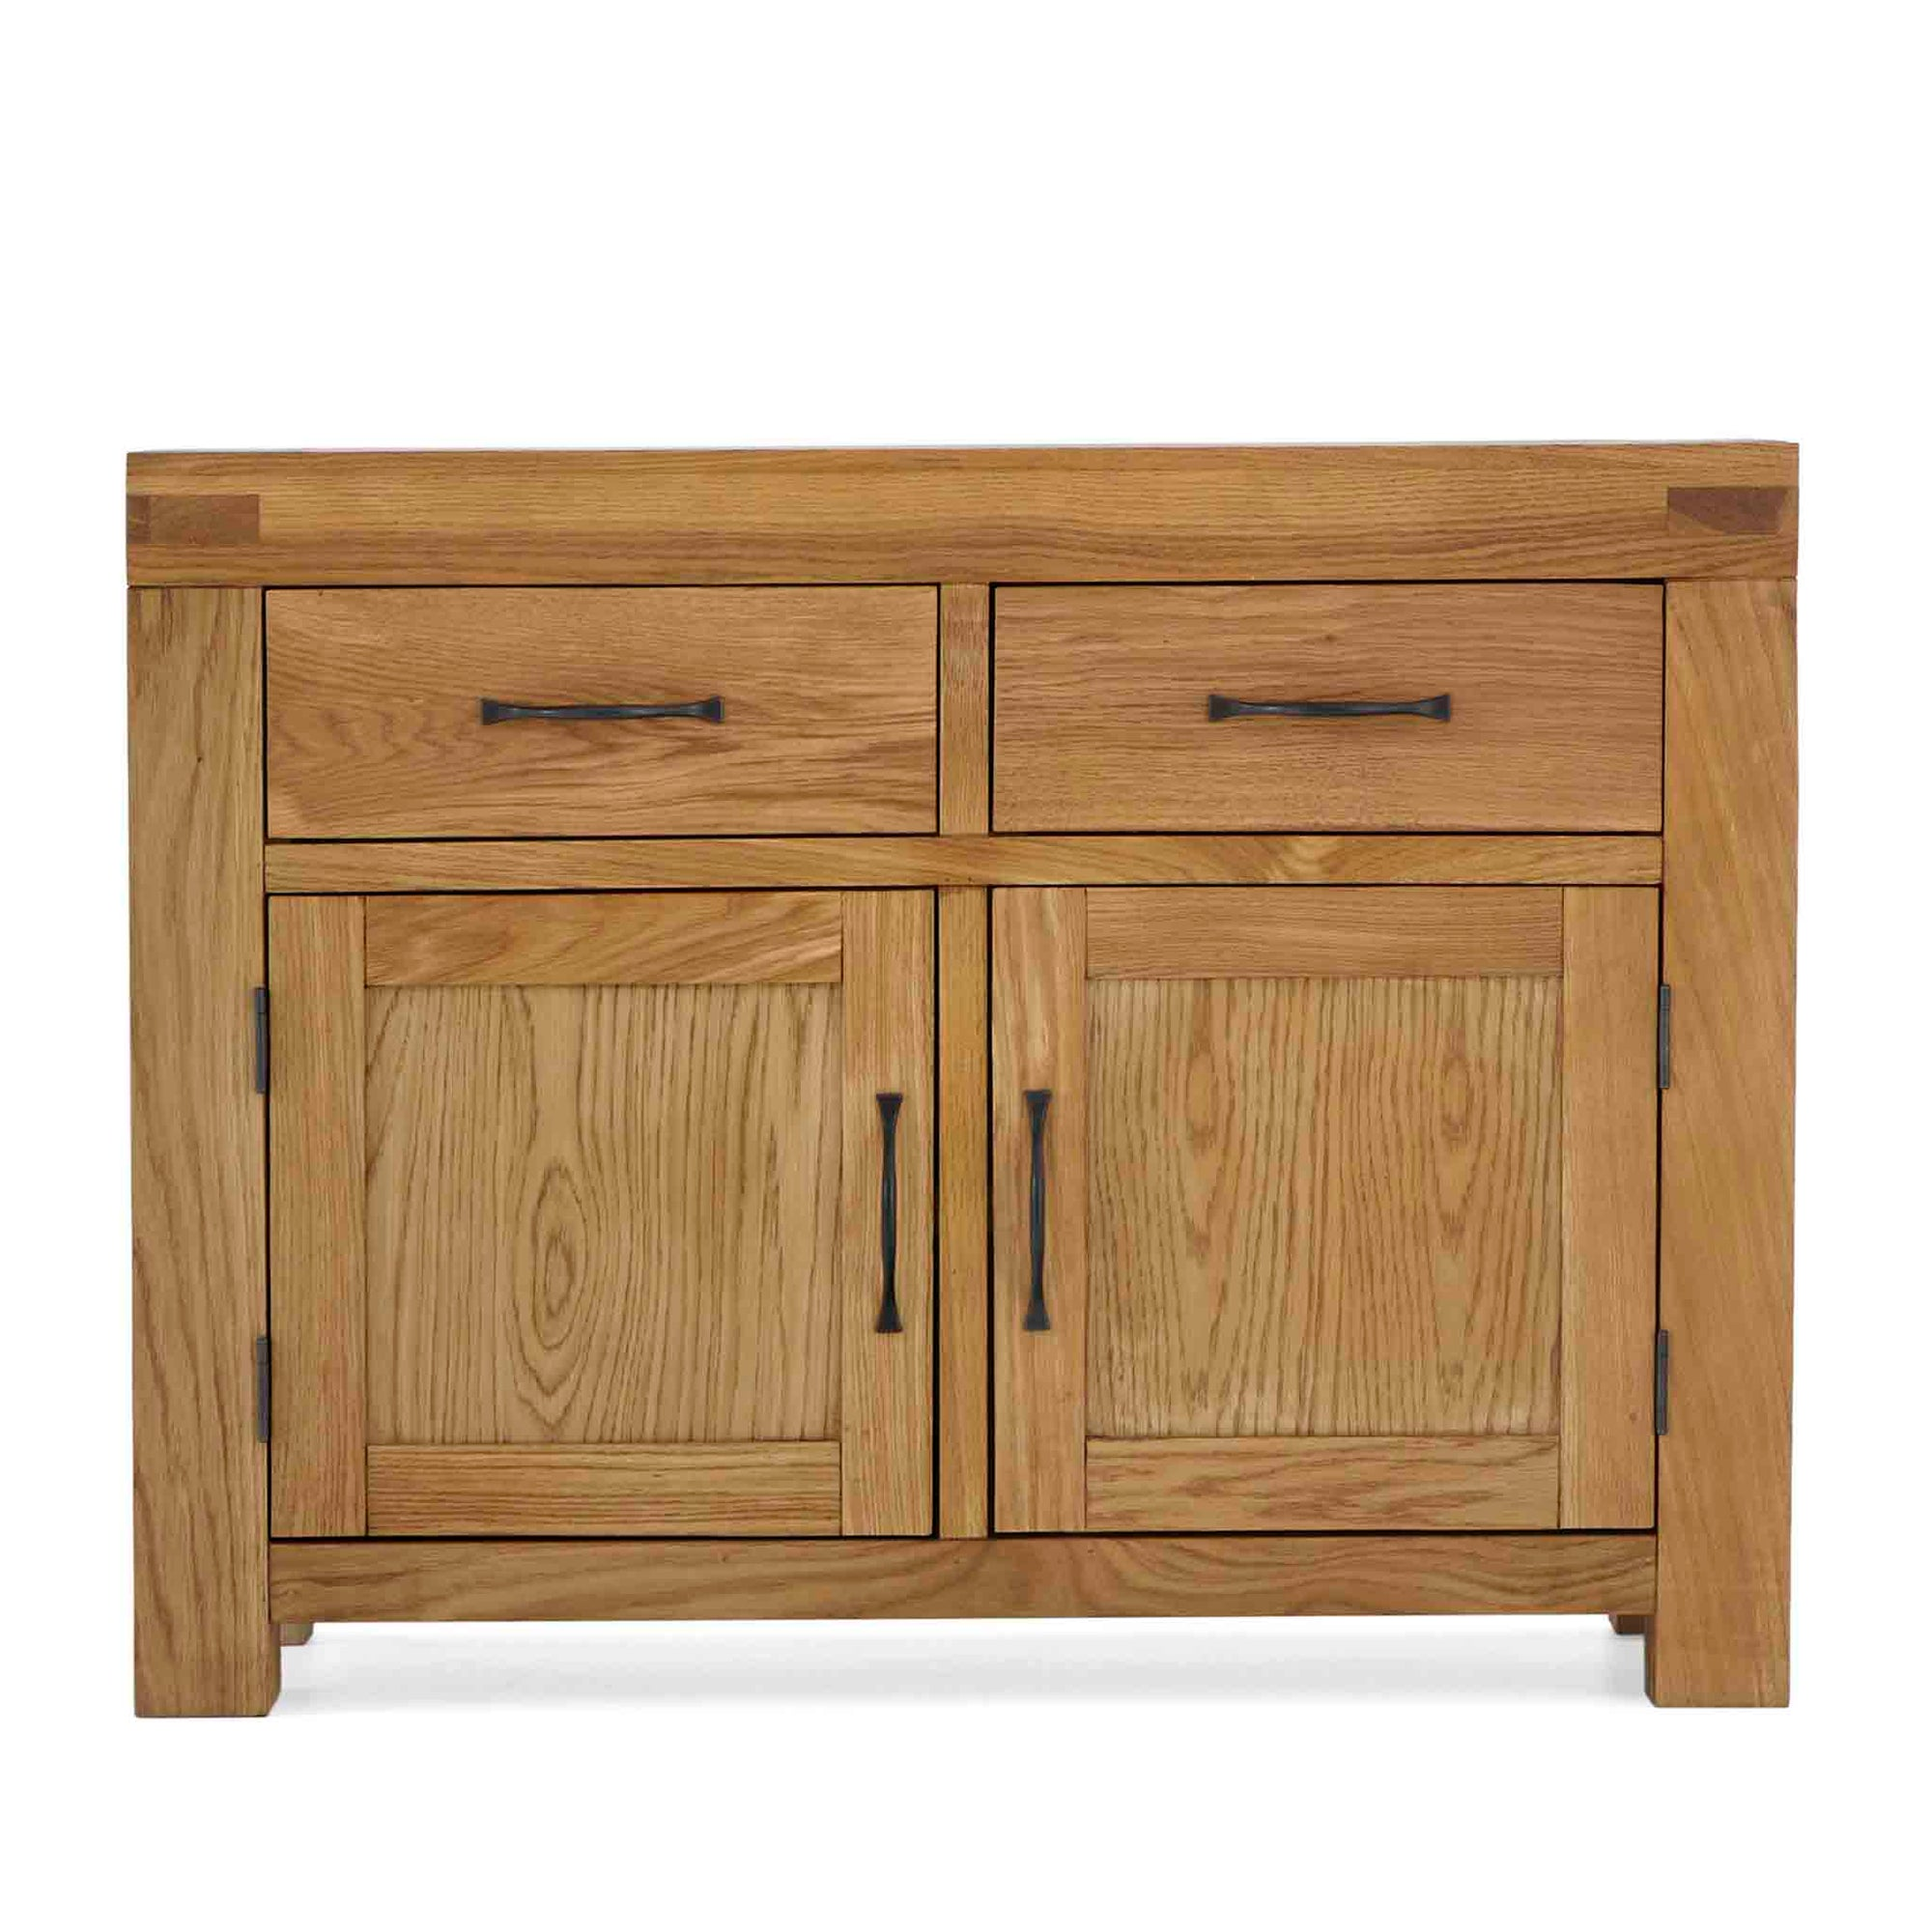 Abbey Grande Oak Small Sideboard Cabinet with 2 Drawers by Roseland Furniture